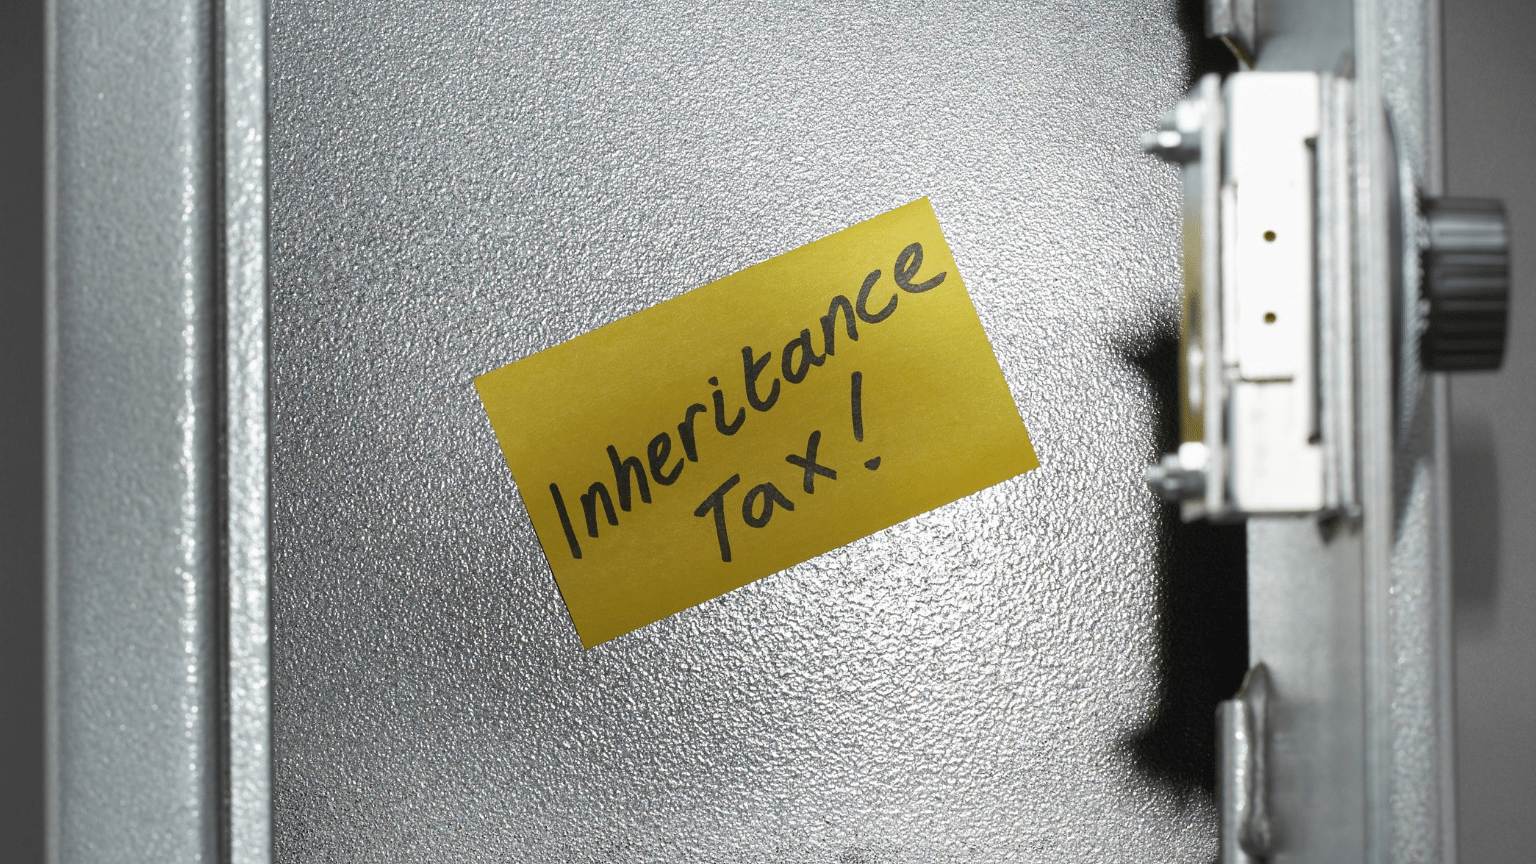 The Inheritance Experts offer some deep insights into paying inheritance tax (IHT)